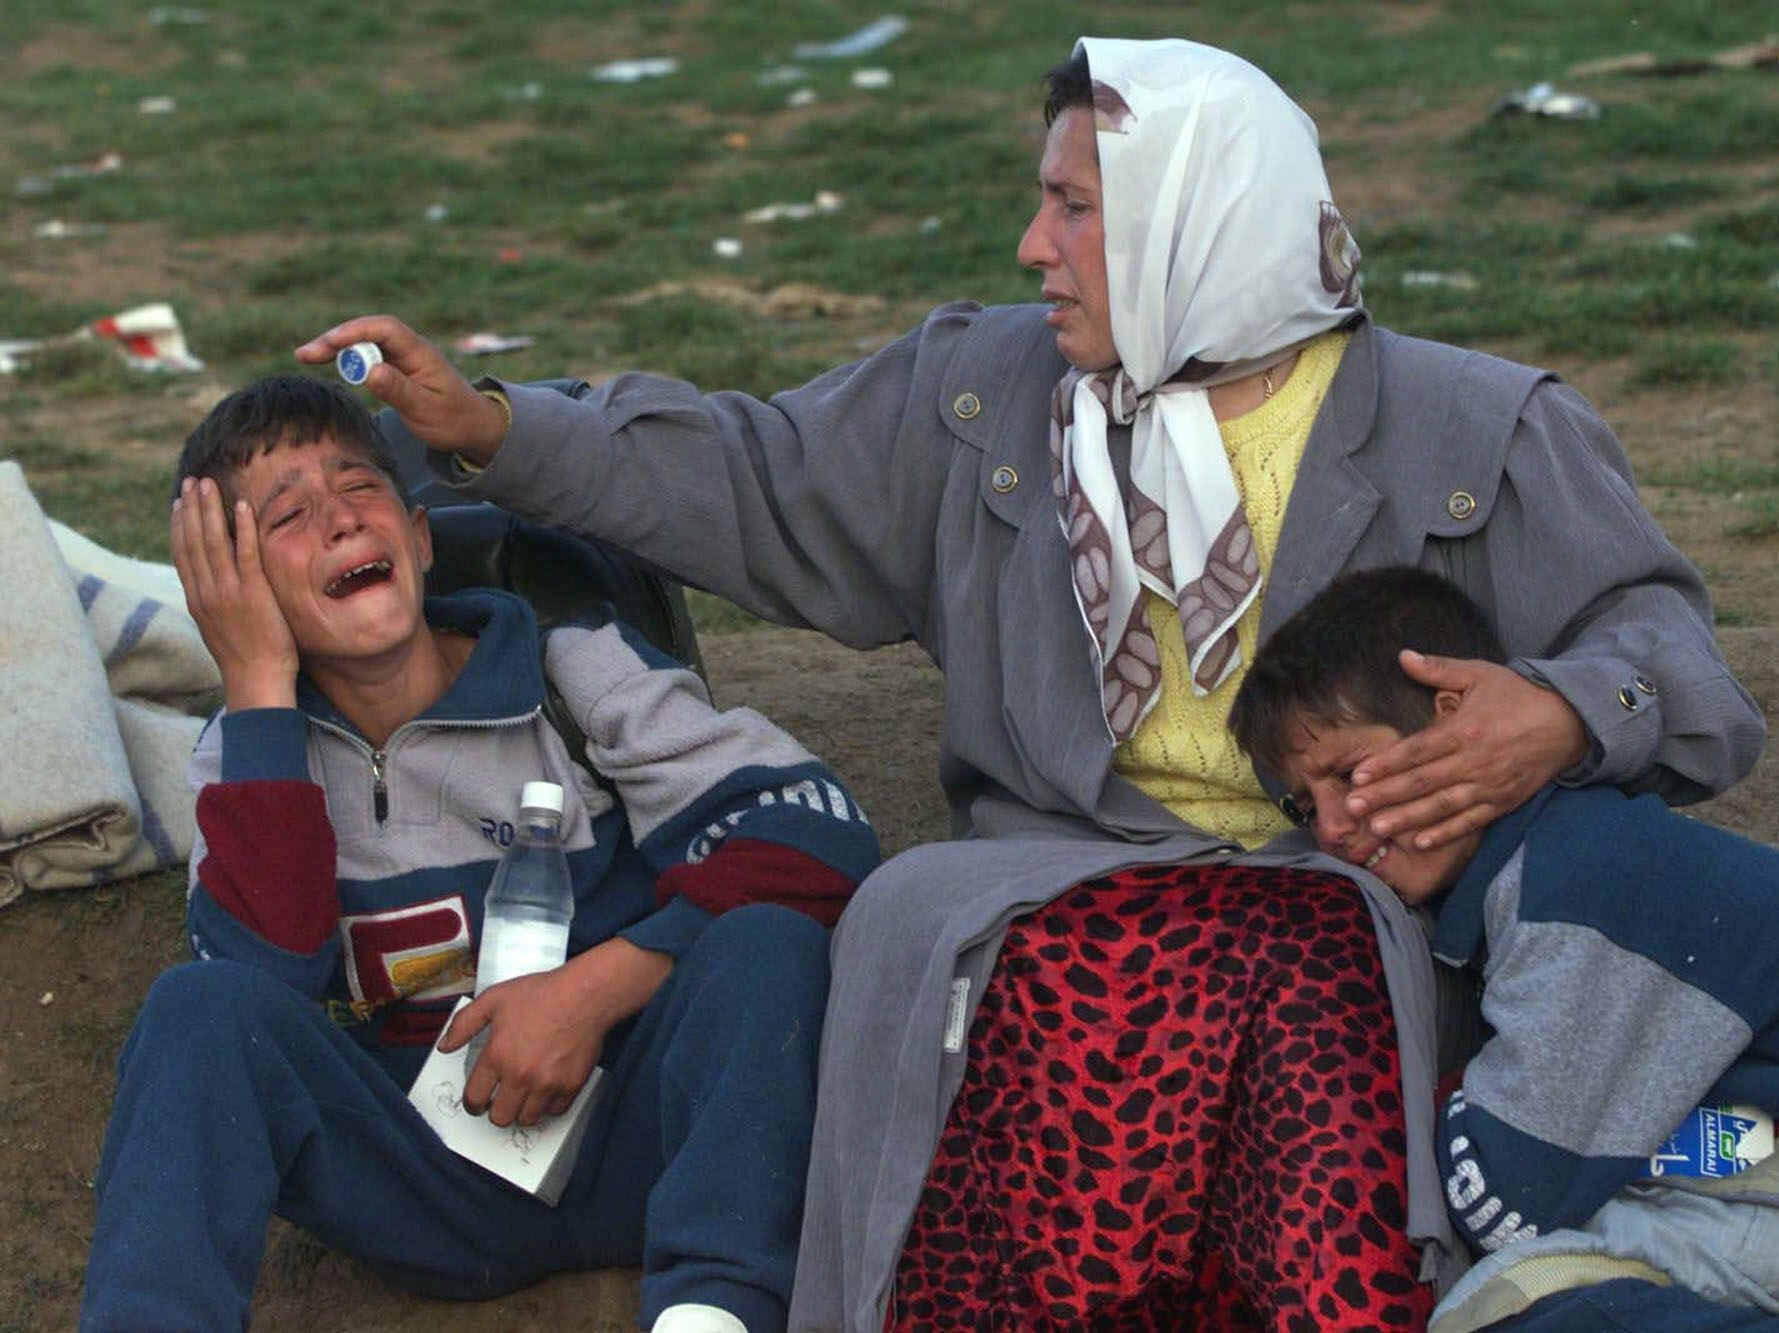 An ethnic Albanian woman consoles her two twin sons at the Morini, Albania, border after crossing on foot from Kosovo Tuesday May 25, 1999. Kosovar refugees continued to cross into neighboring Albania as NATO tries to relocate the over-crowded camps further south from the volatile border area. (AP Photo/David Guttenfelder)-